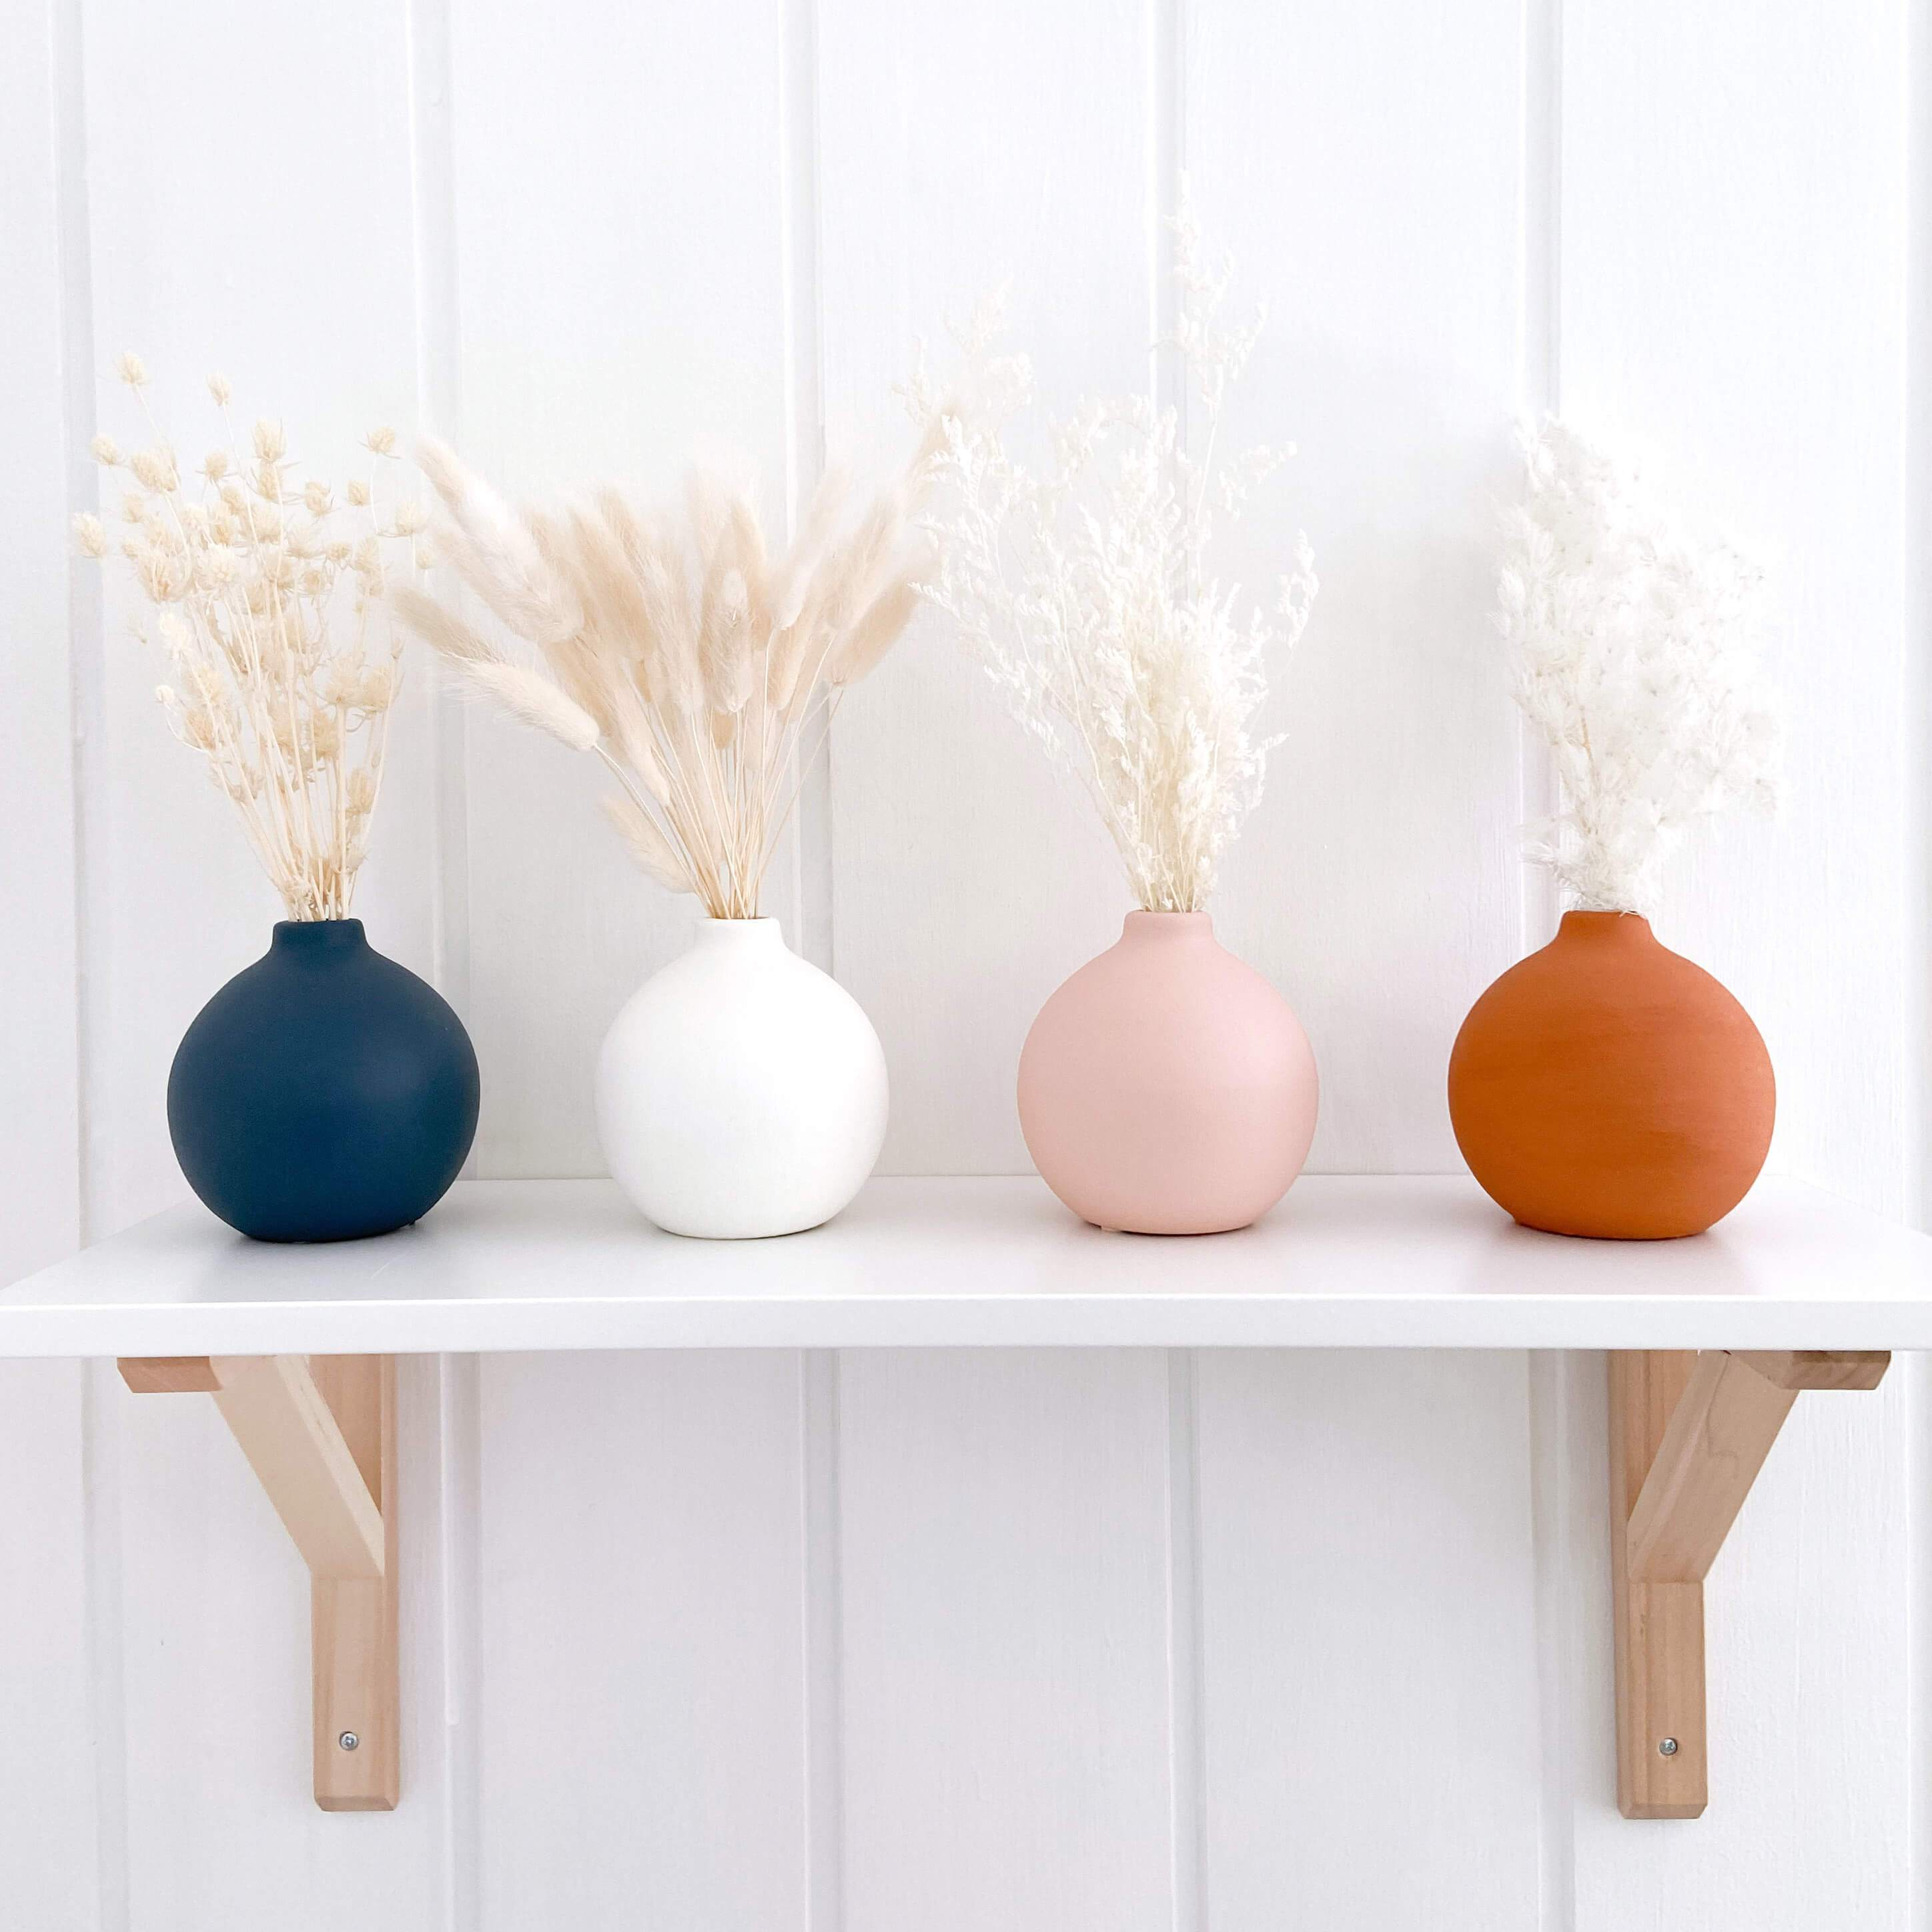 4 round ceramic hand painted vases in navy, pink, white and terracotta sitting on nursery shelf with dried flowers in each of the vases